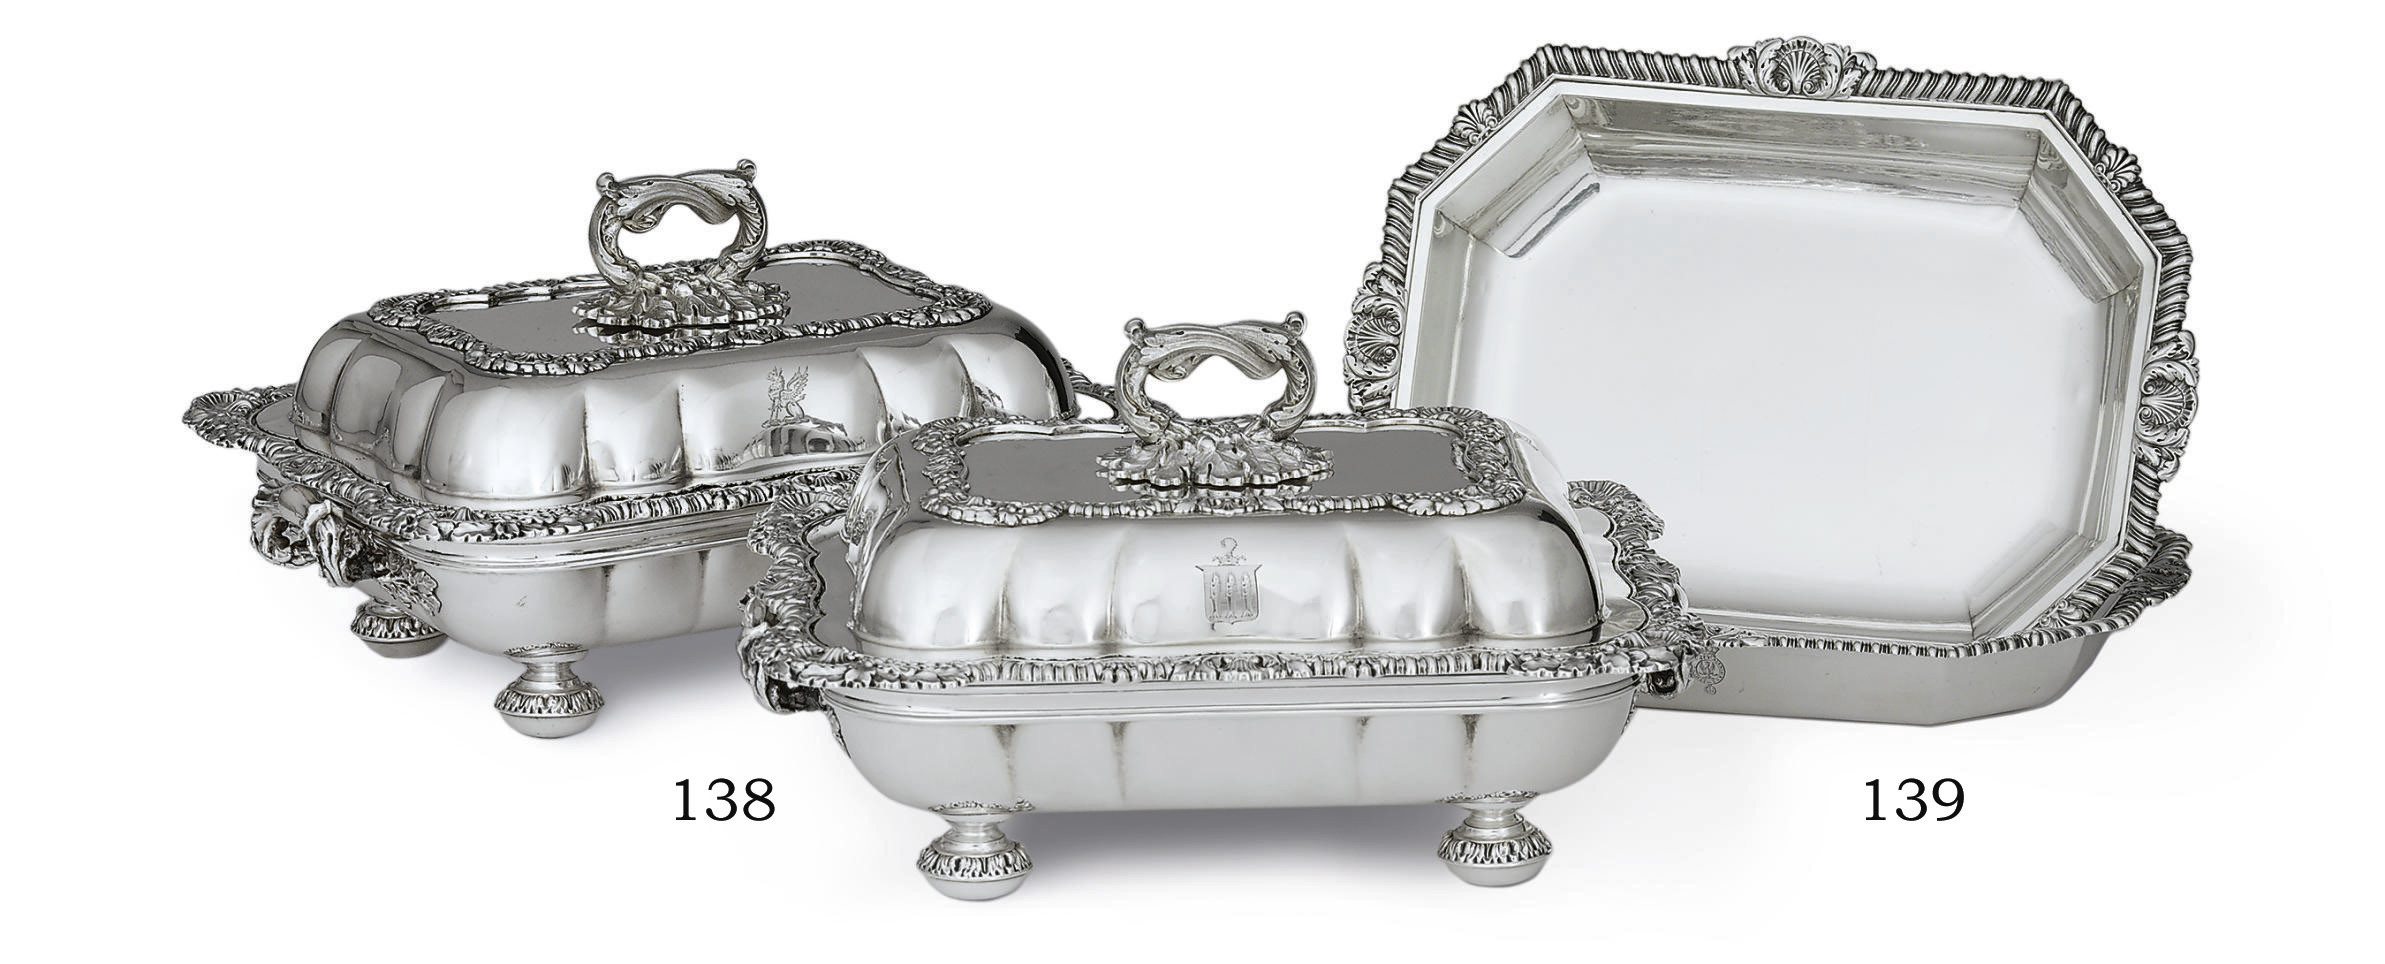 A PAIR OF GEORGE IV SILVER AND SHEFFIELD-PLATED VEGETABLE DISHES AND COVERS